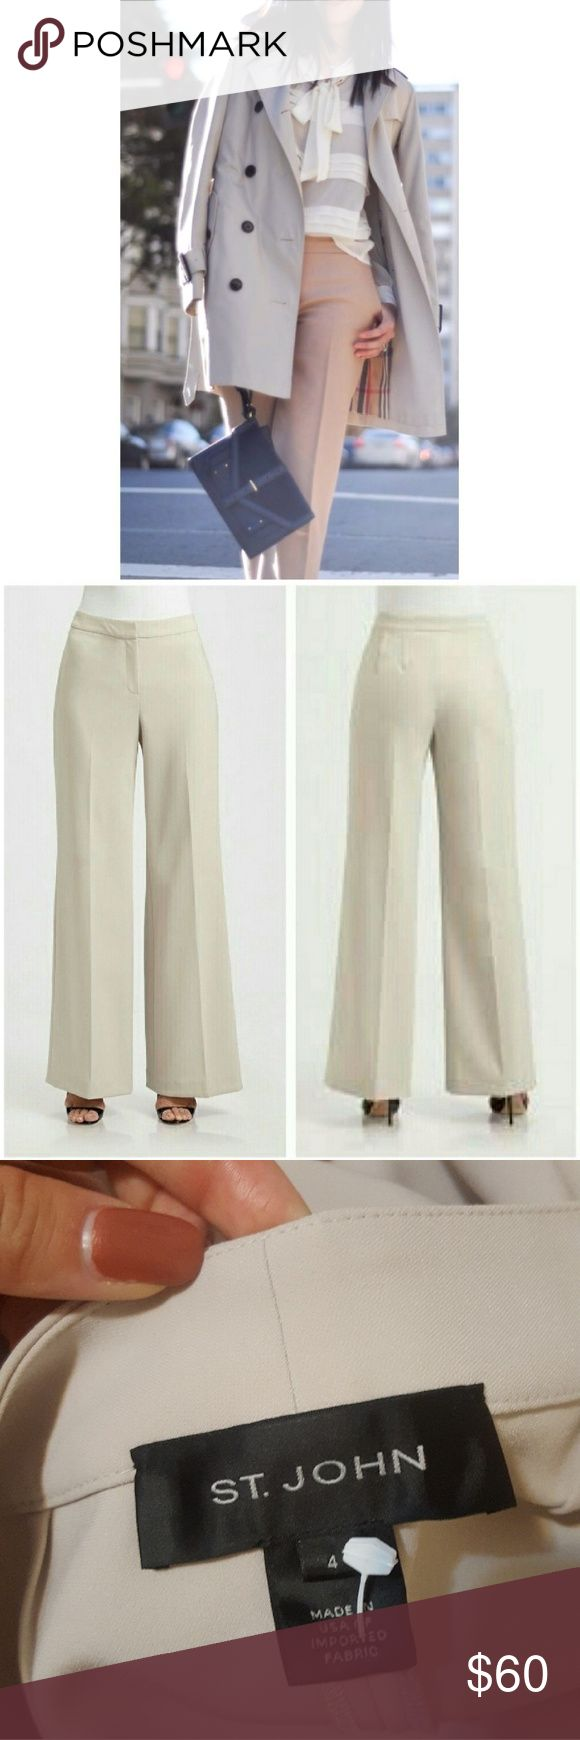 """St. JOHN Khaki High Waist Pleated Pants 4 Mint condition & freshly dry cleaned. Clean no pocket styling creates a chic smooth flowy look. Santana knit. Very light cream color  15"""" waist 18"""" hips  33"""" inseam St. John Pants"""